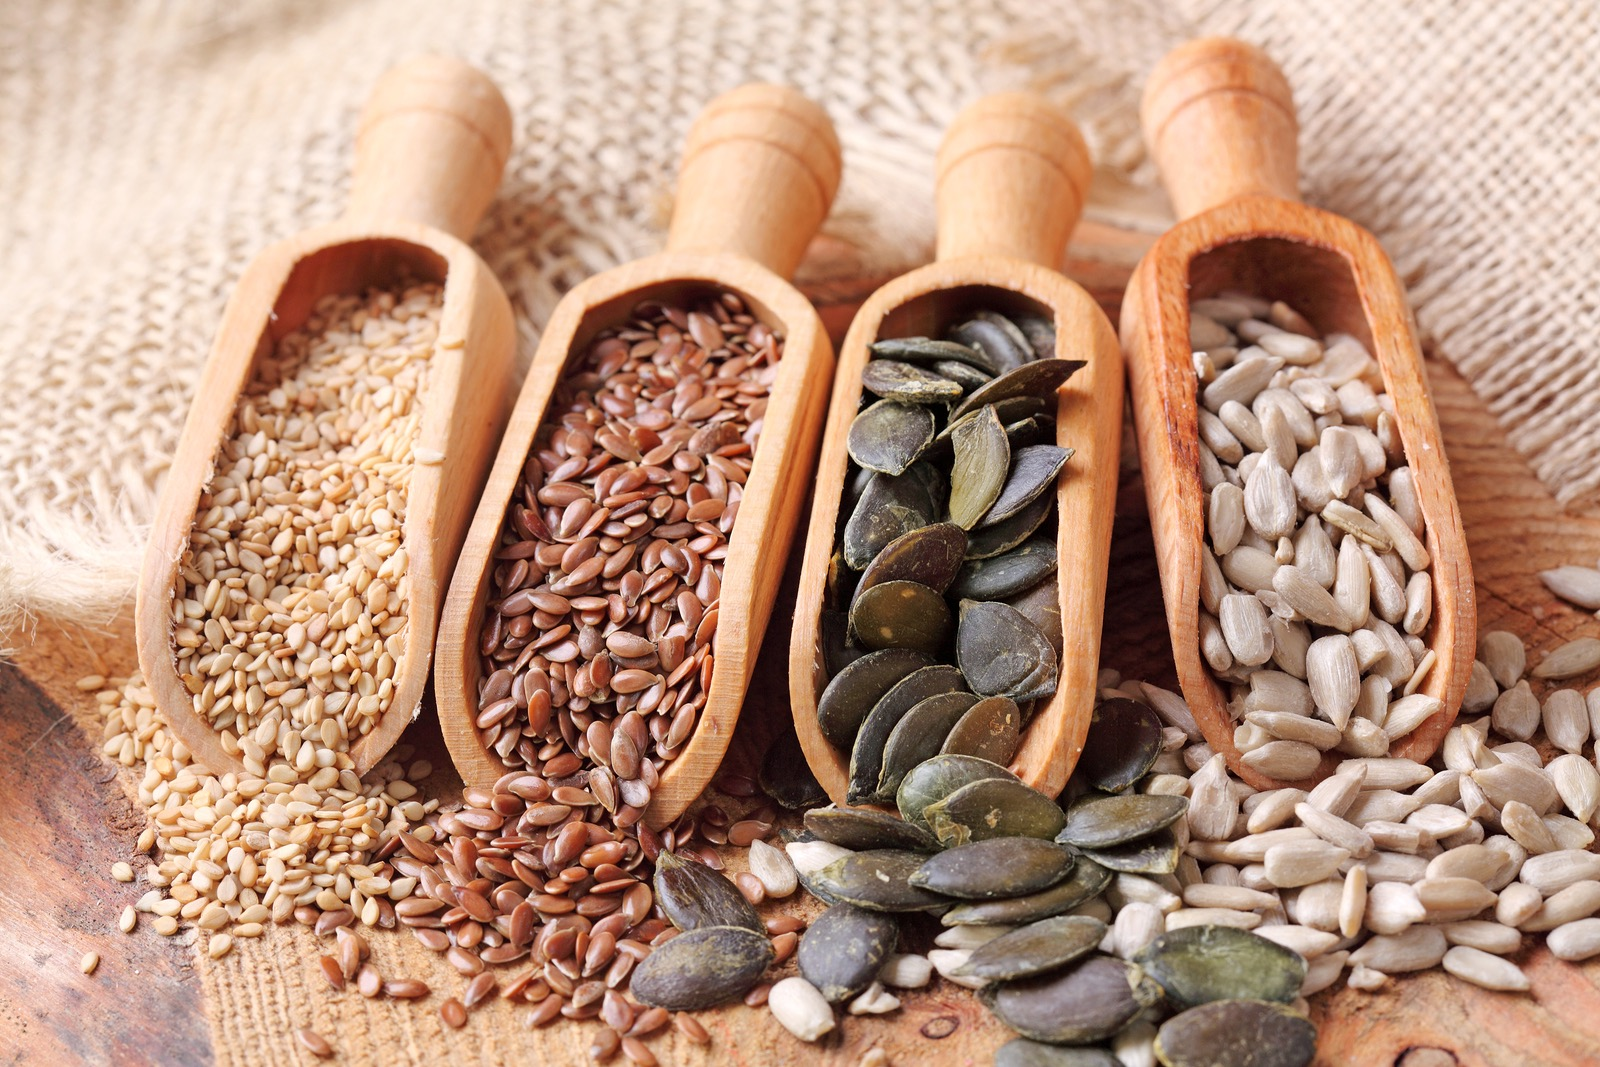 Hormonal Imbalances Seeds Might Be Your Fix Healthy Eating And Living